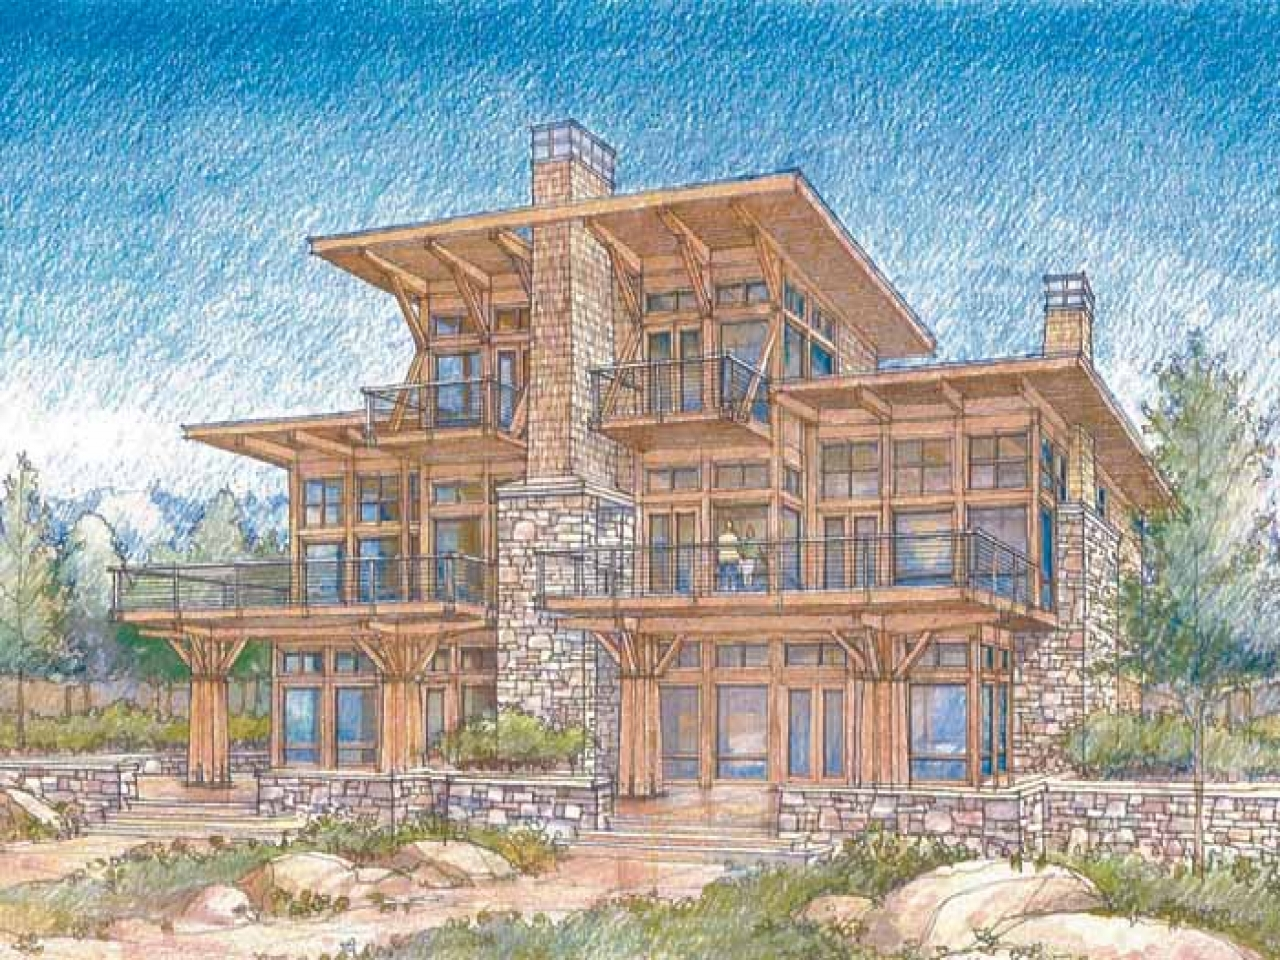 Waterfront luxury home plans modern waterfront house plans for Luxury lake house